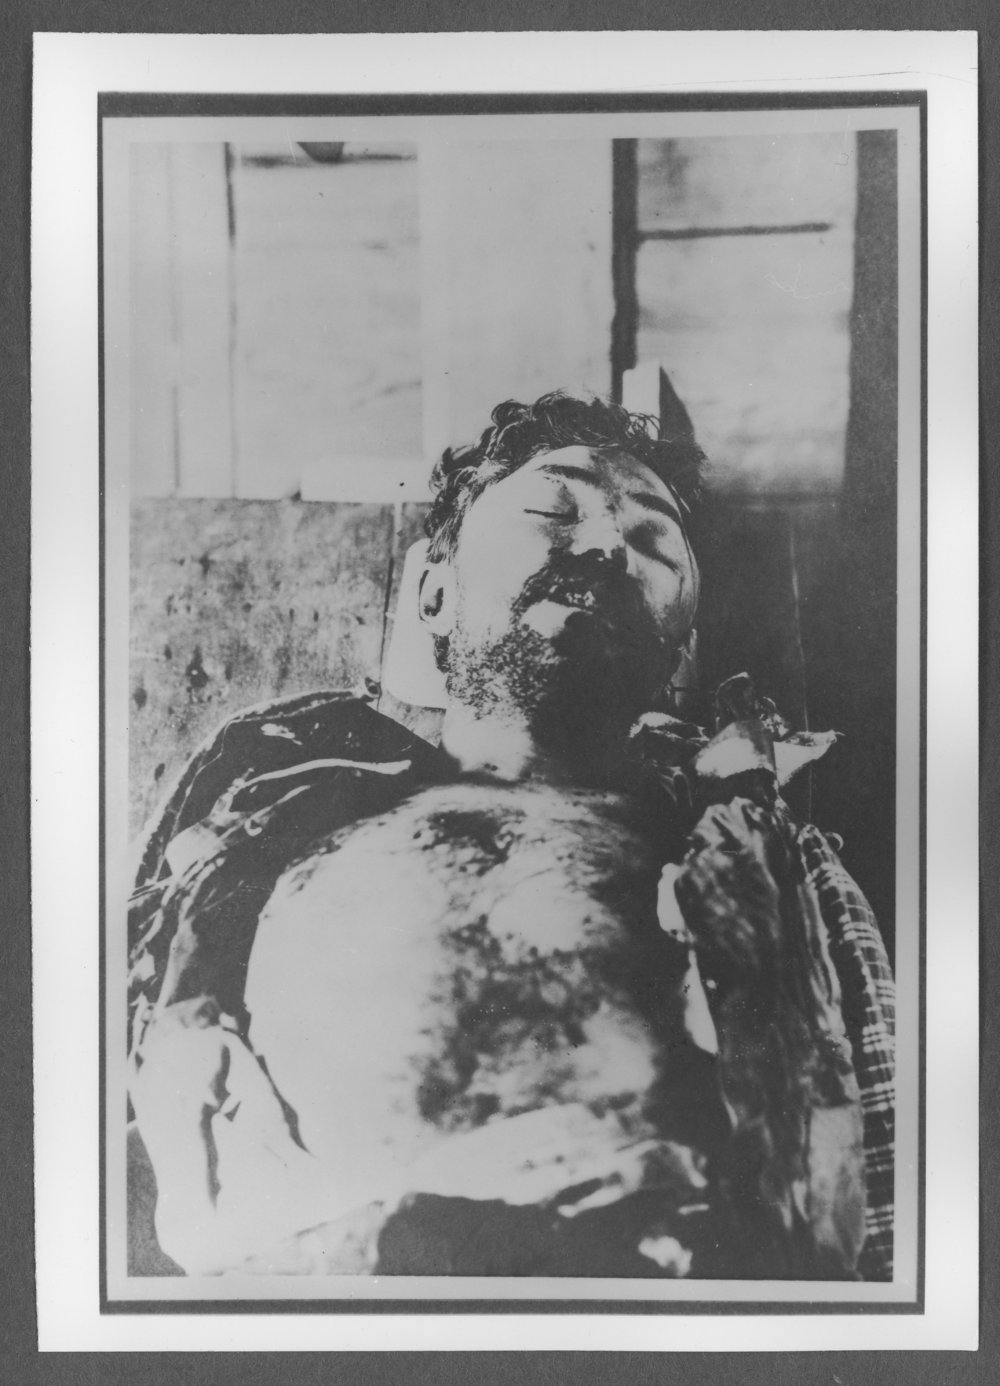 Scenes of Sherman County, Kansas - Train robber who was shot at the Barthalomew home, August 1900.